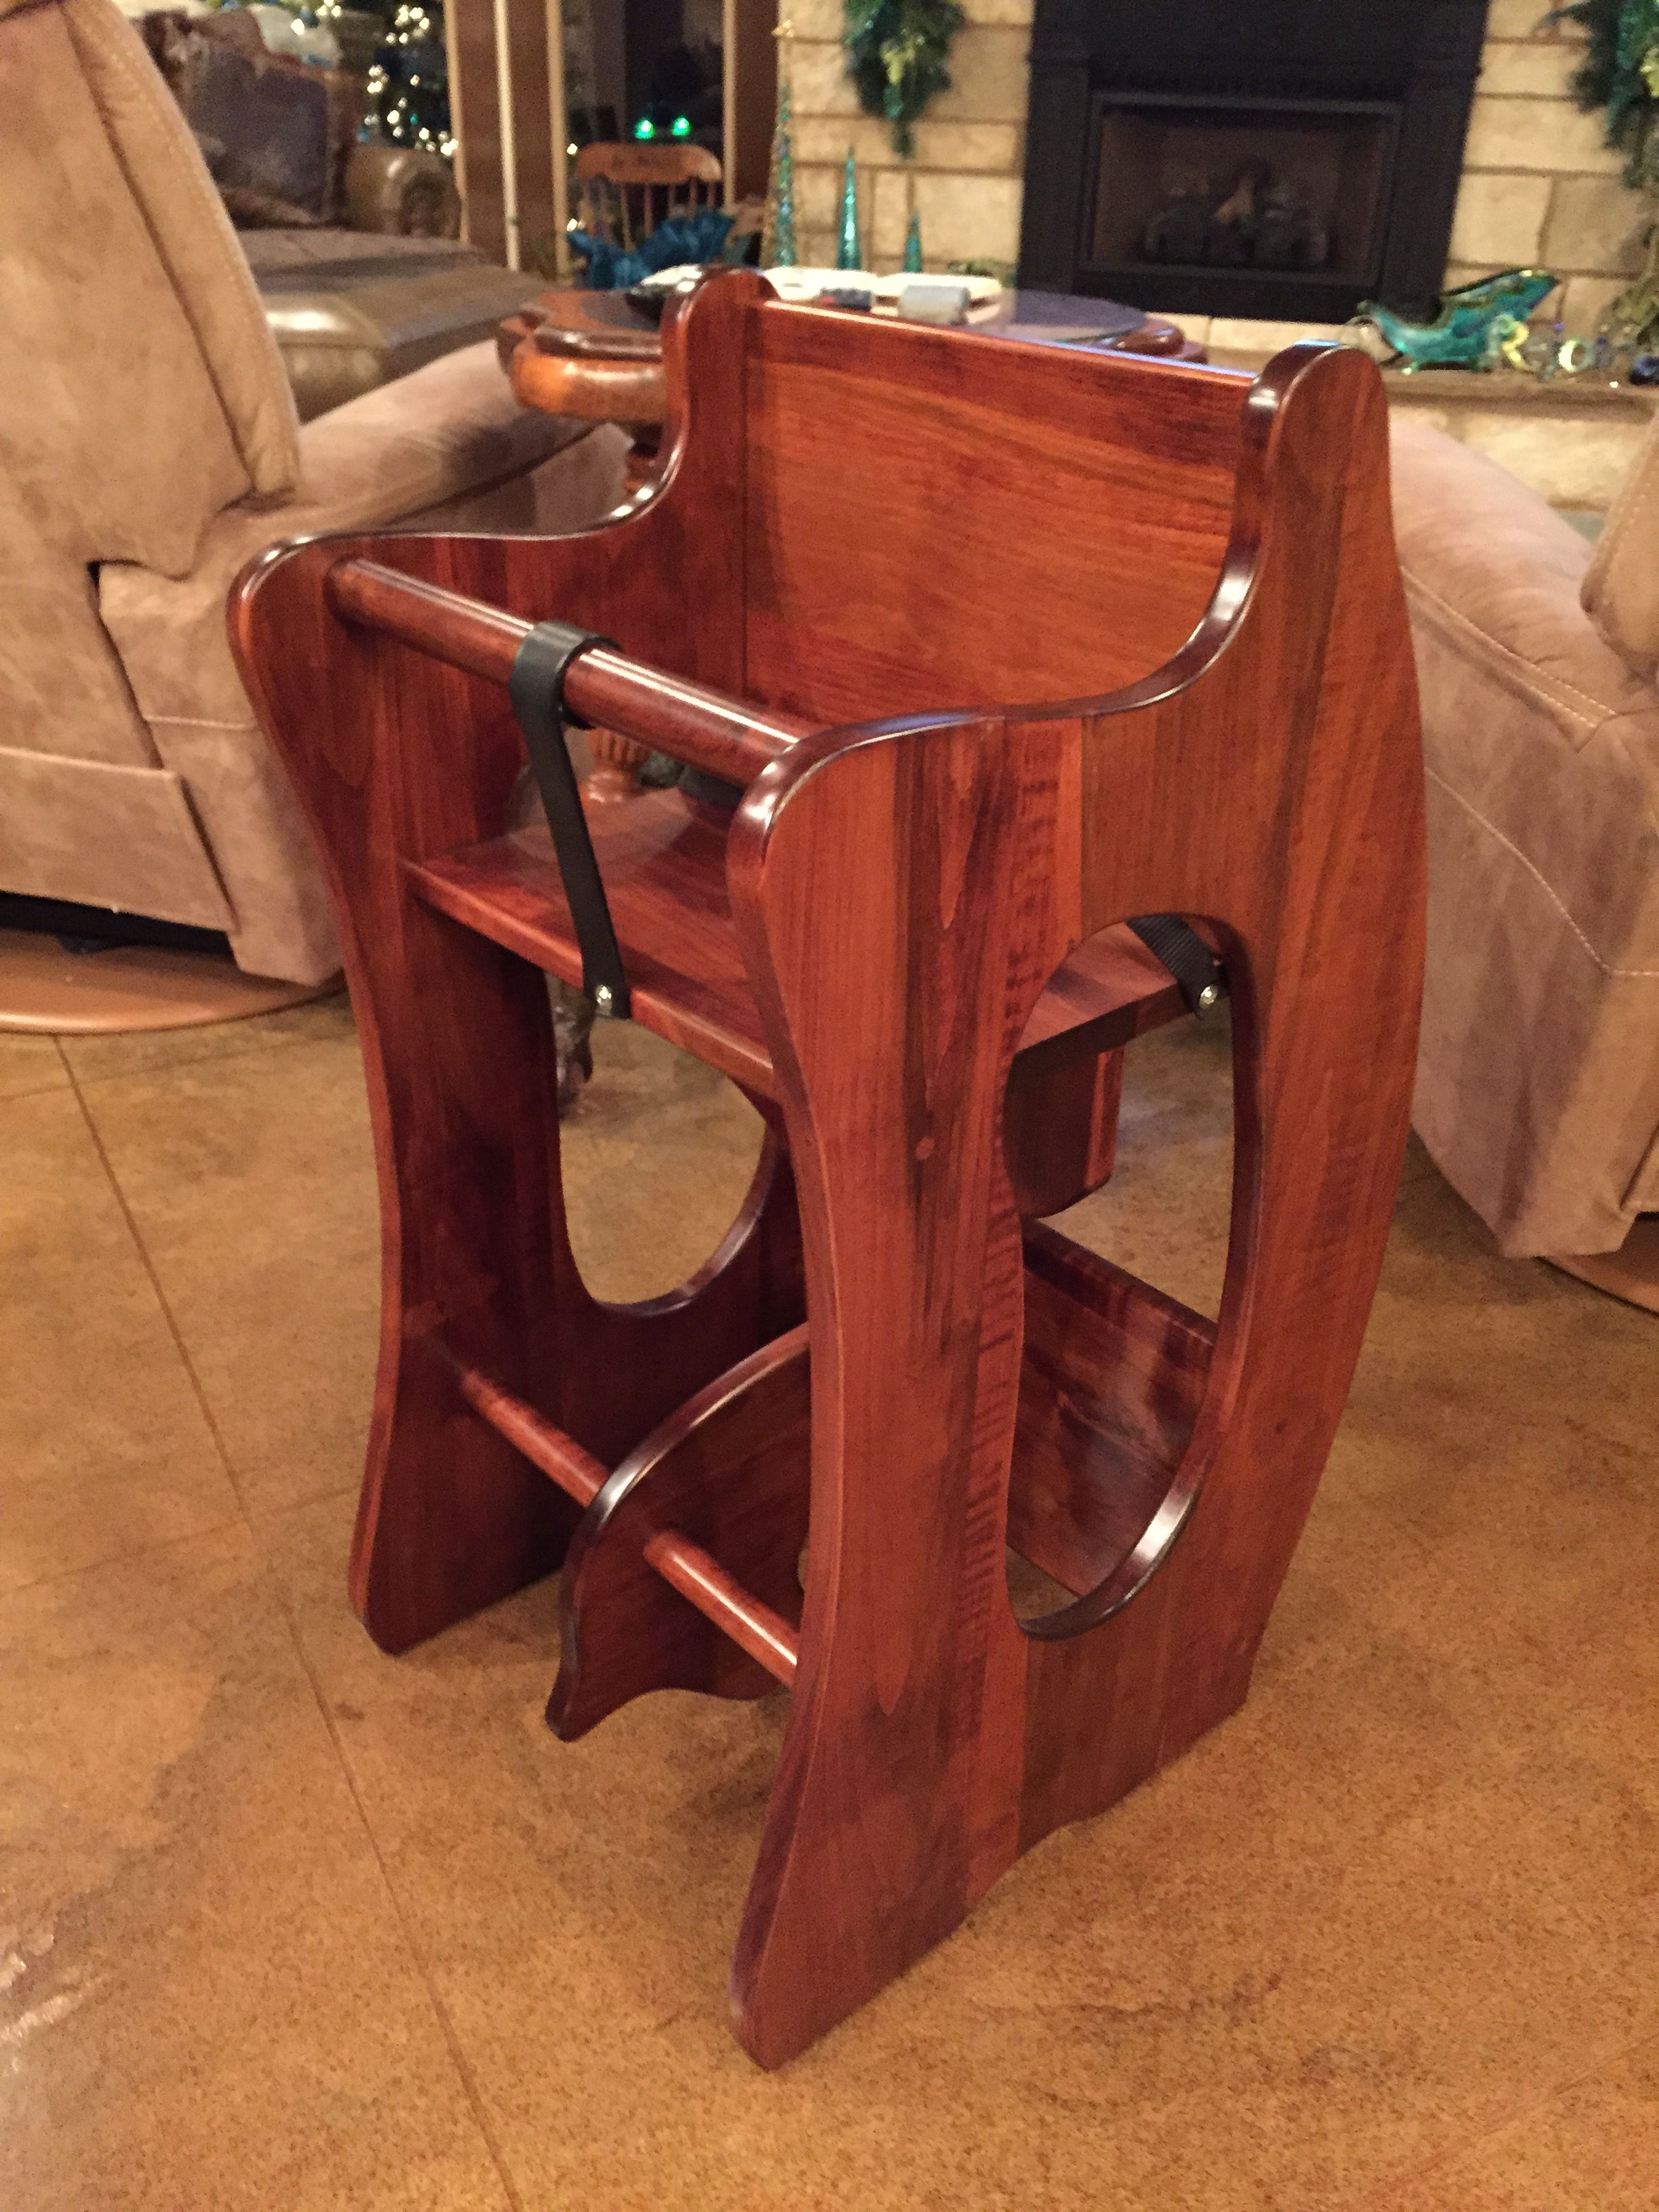 rocking horse chair desk chairpro amish furniture 3n1  highchair and all